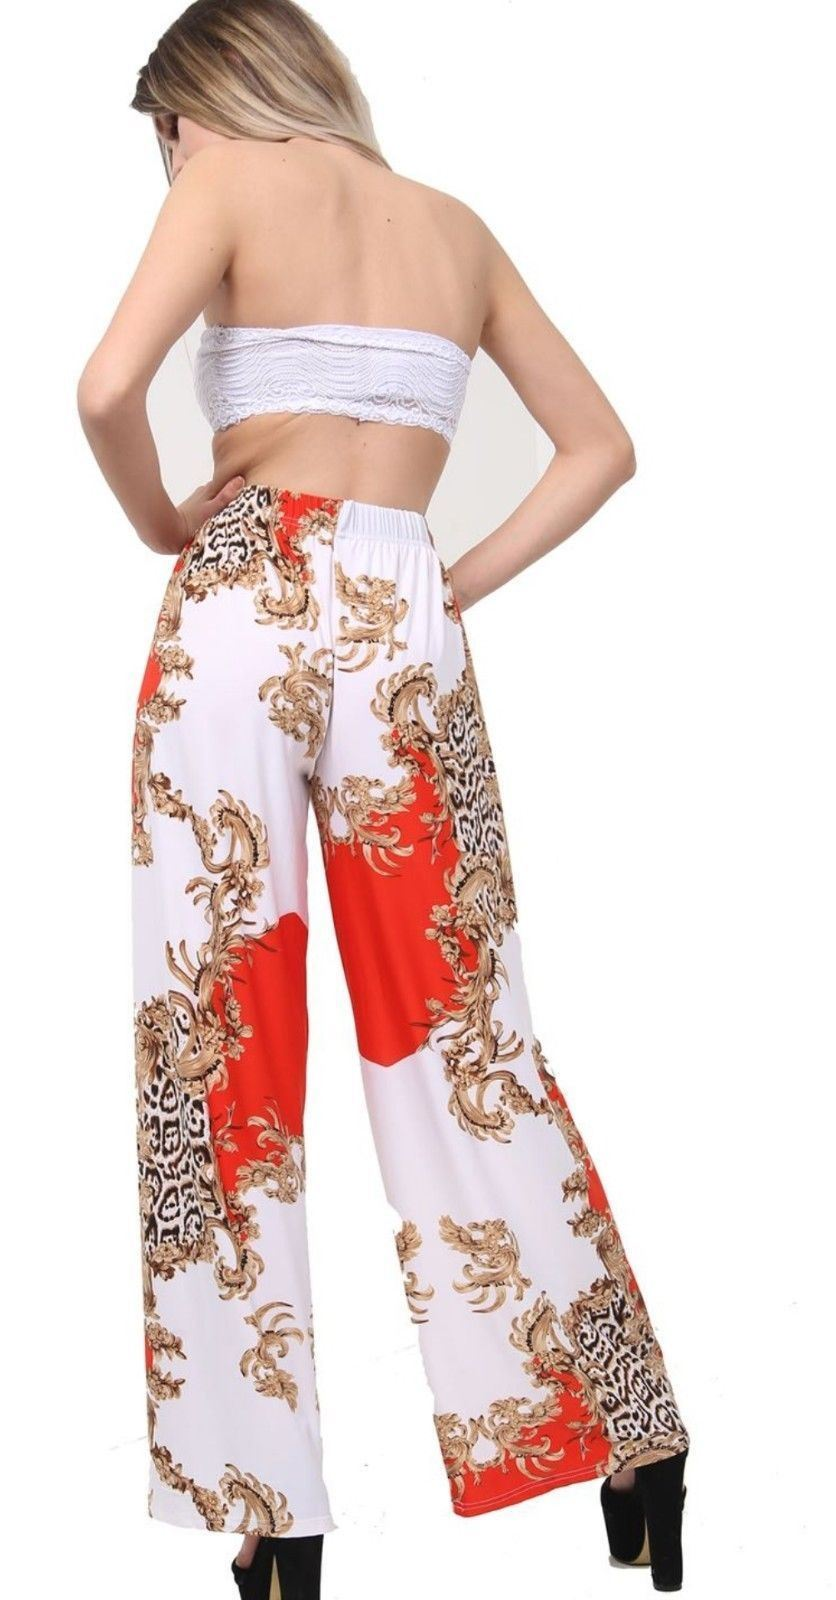 New-Ladies-Floral-Printed-Wide-Leg-Flared-Parallel-Baggy-Trousers-Pants-Palazzo thumbnail 43